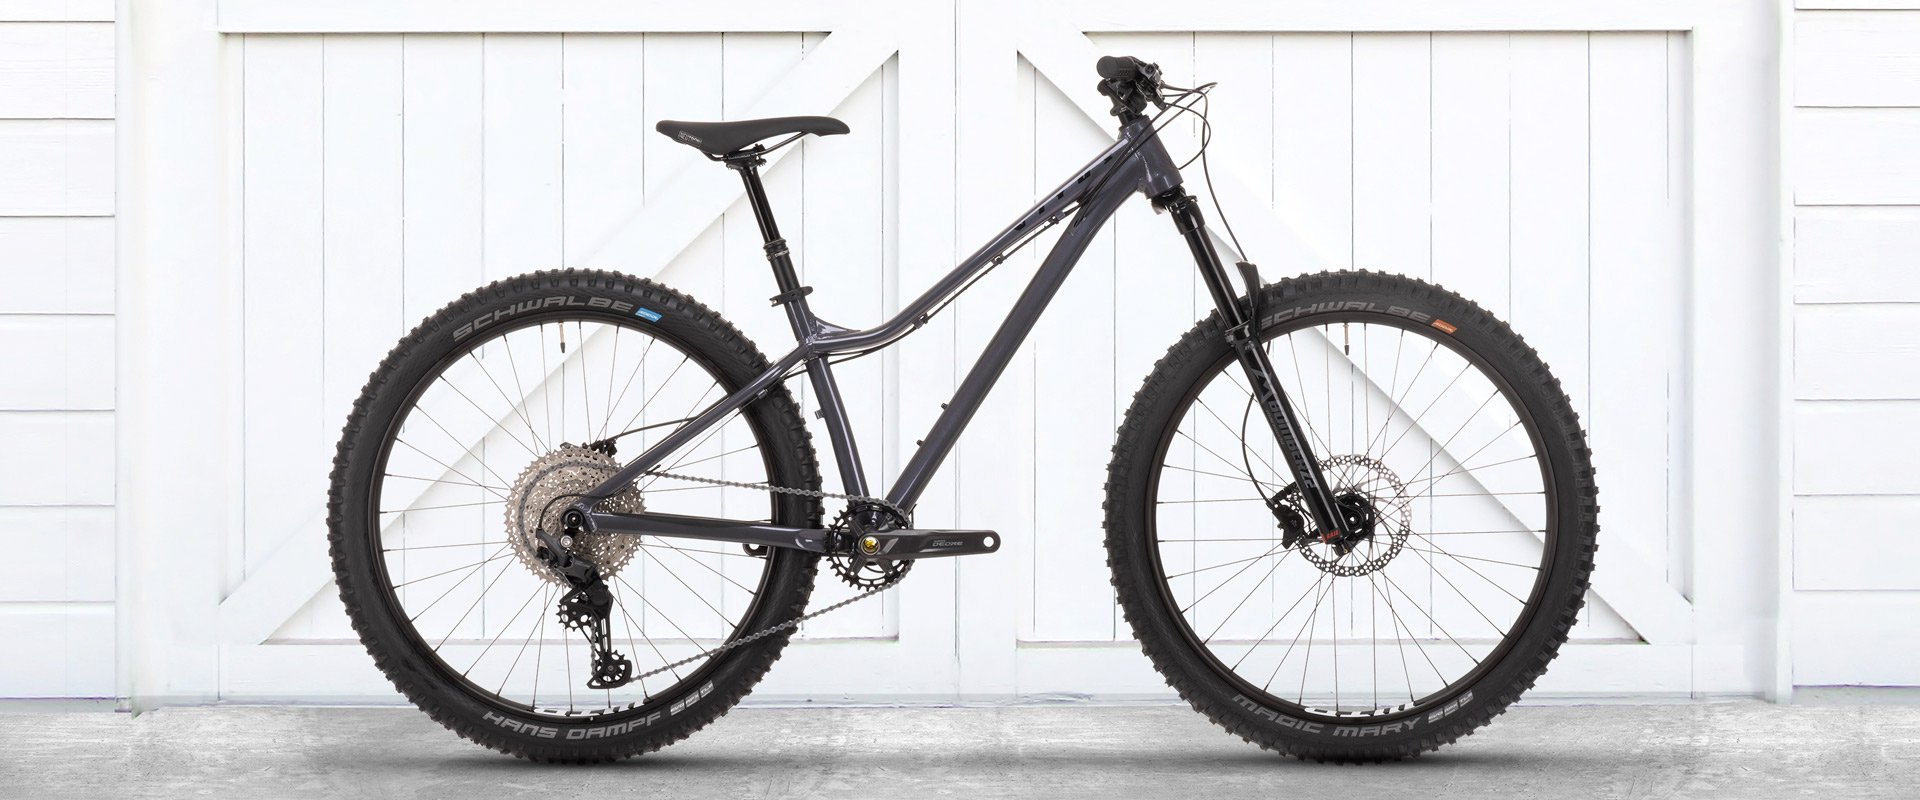 Vitus Sentier 27 VRW Womens Mountain Bike